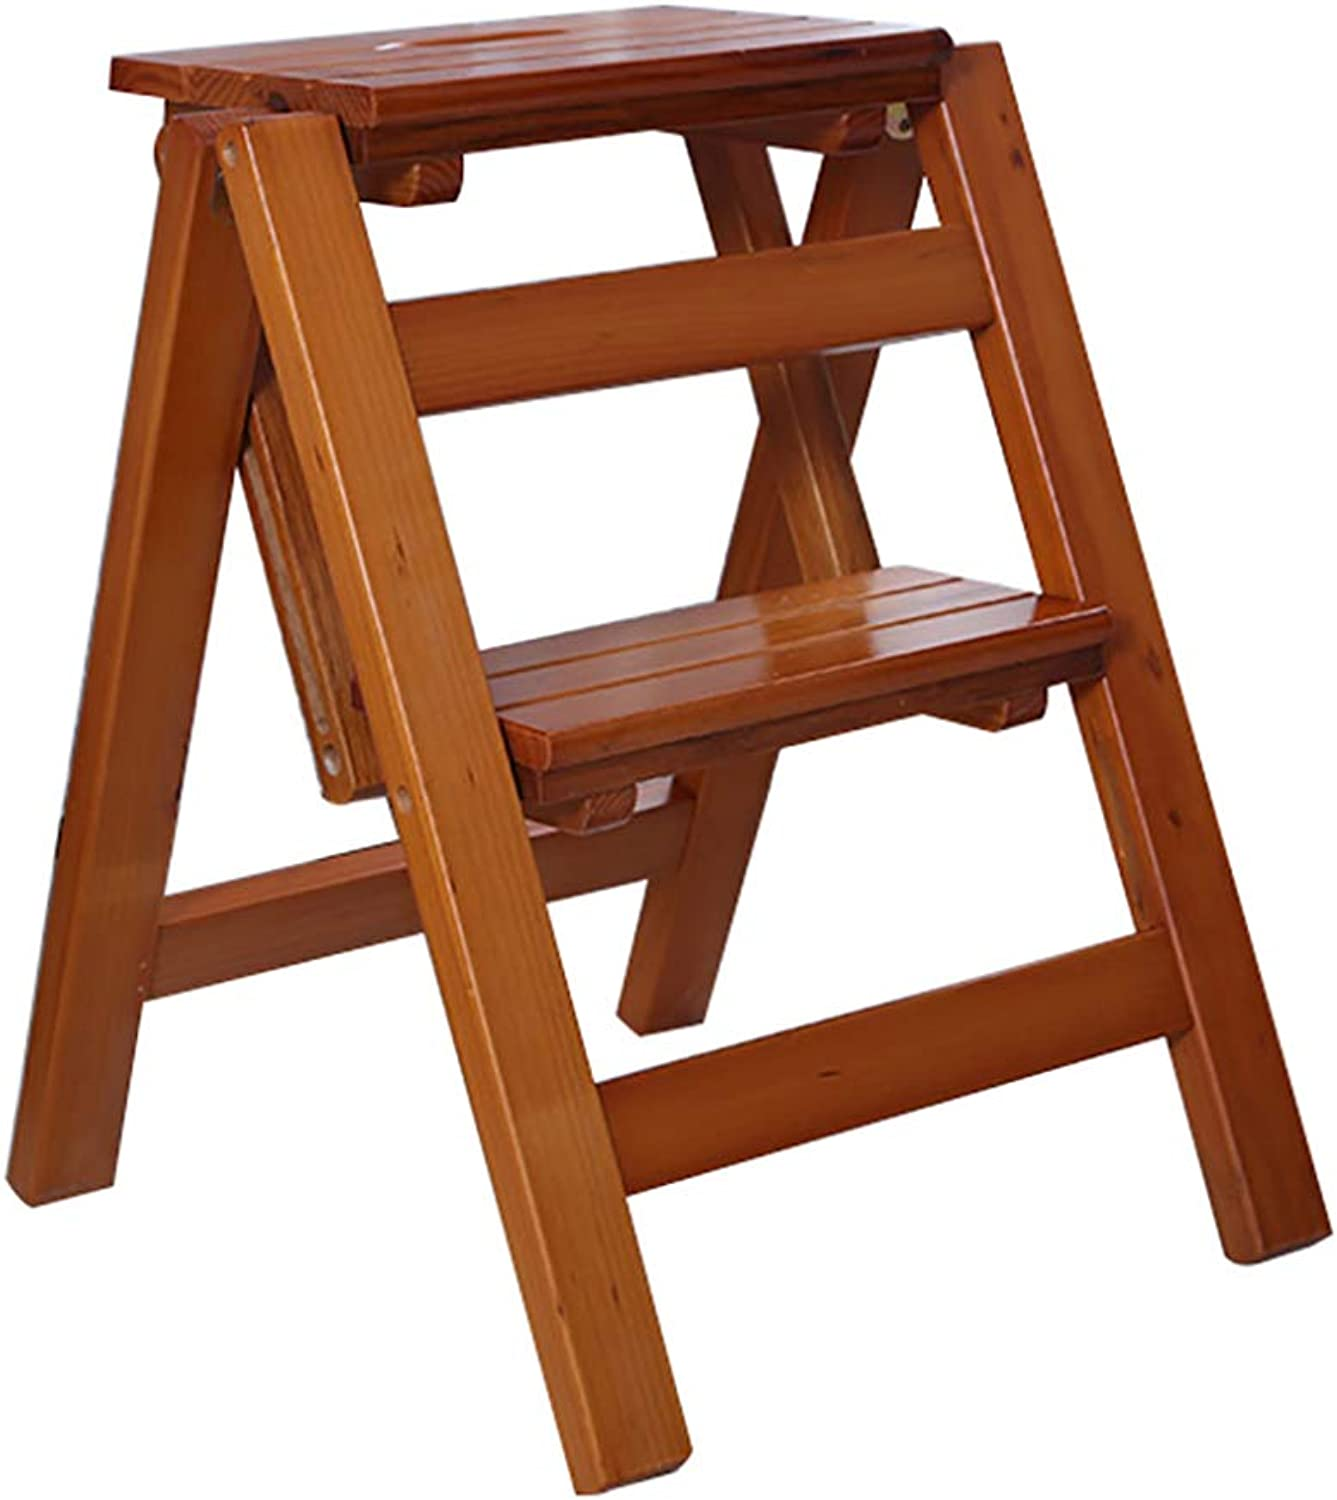 Solid Wood Step Stool 2 Step Ladder Flower Stand Folding Ladder Multifunction Indoor Household Ascend The Small Ladder (color   C)